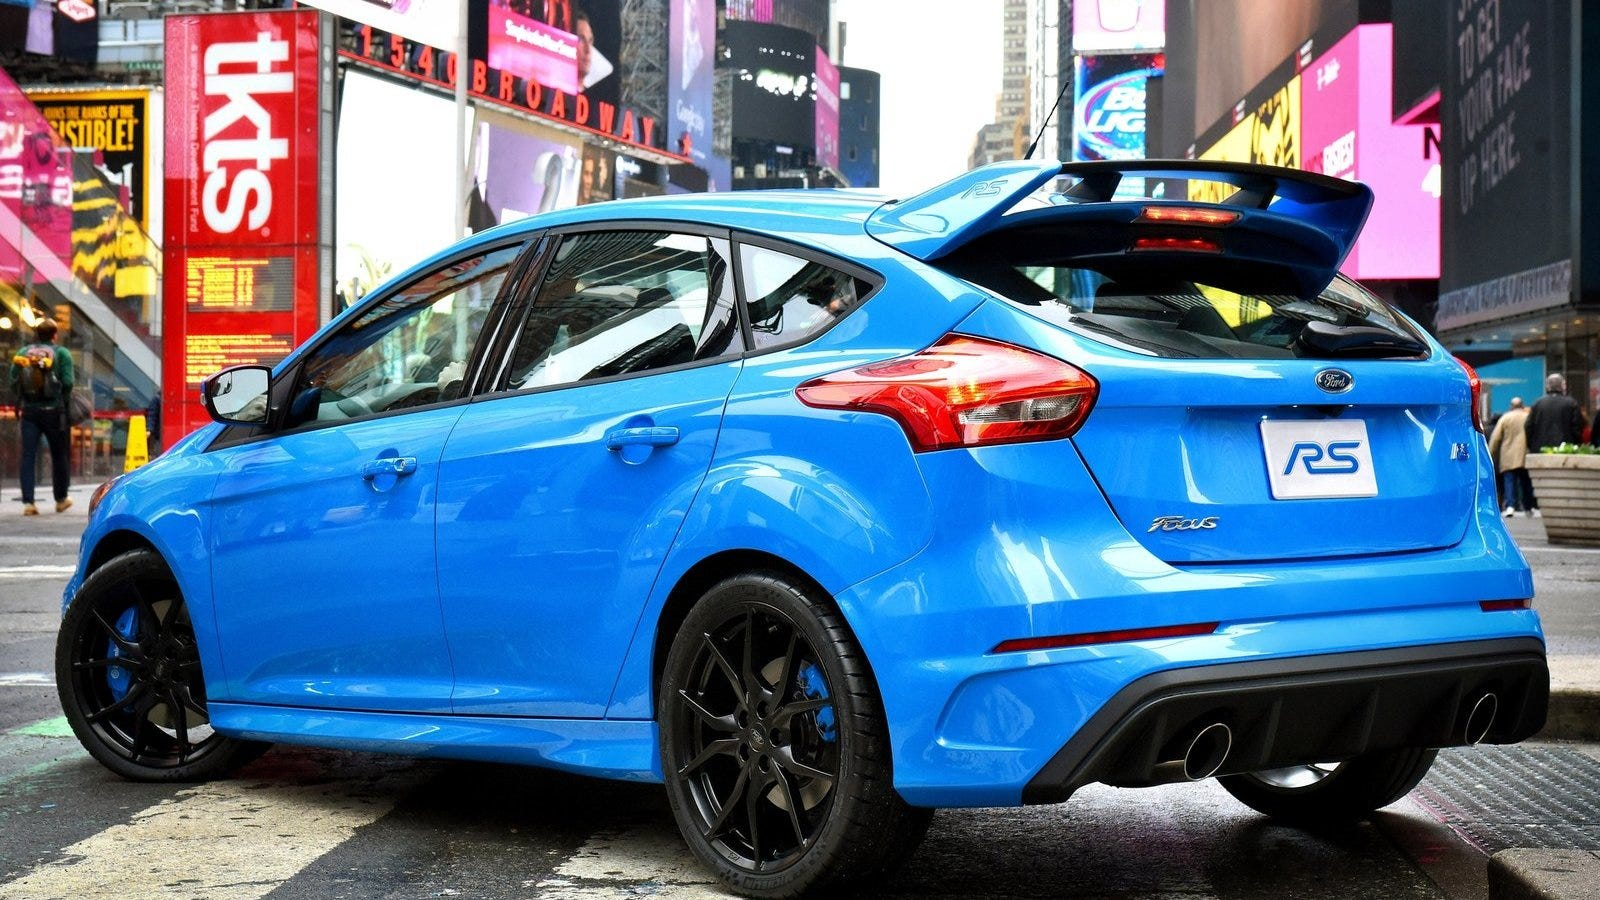 You Can Get An Awesome Deal On A Ford ST Or RS Right Now Before They're Gone